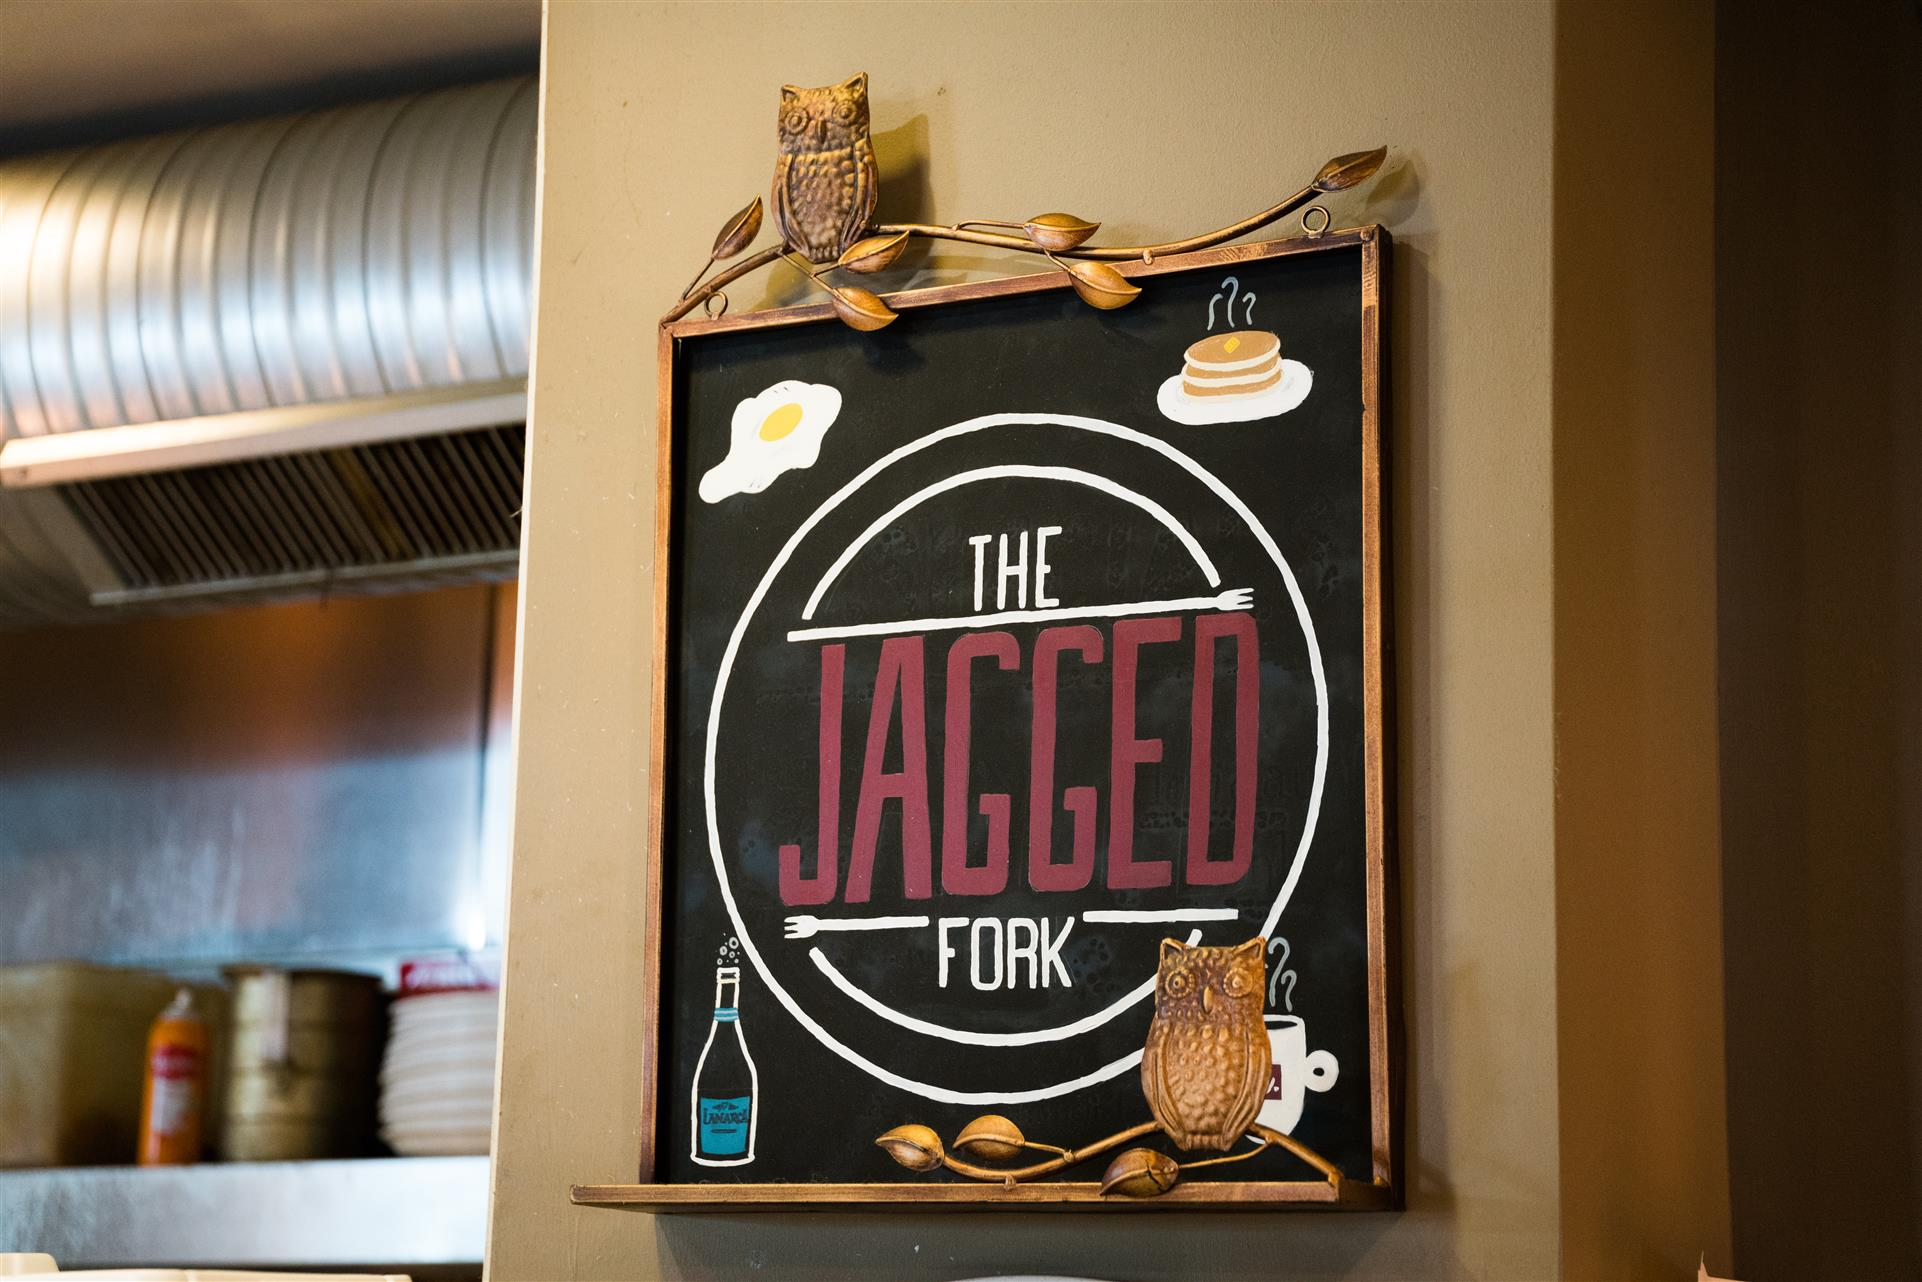 the jagged fork sign on the wall